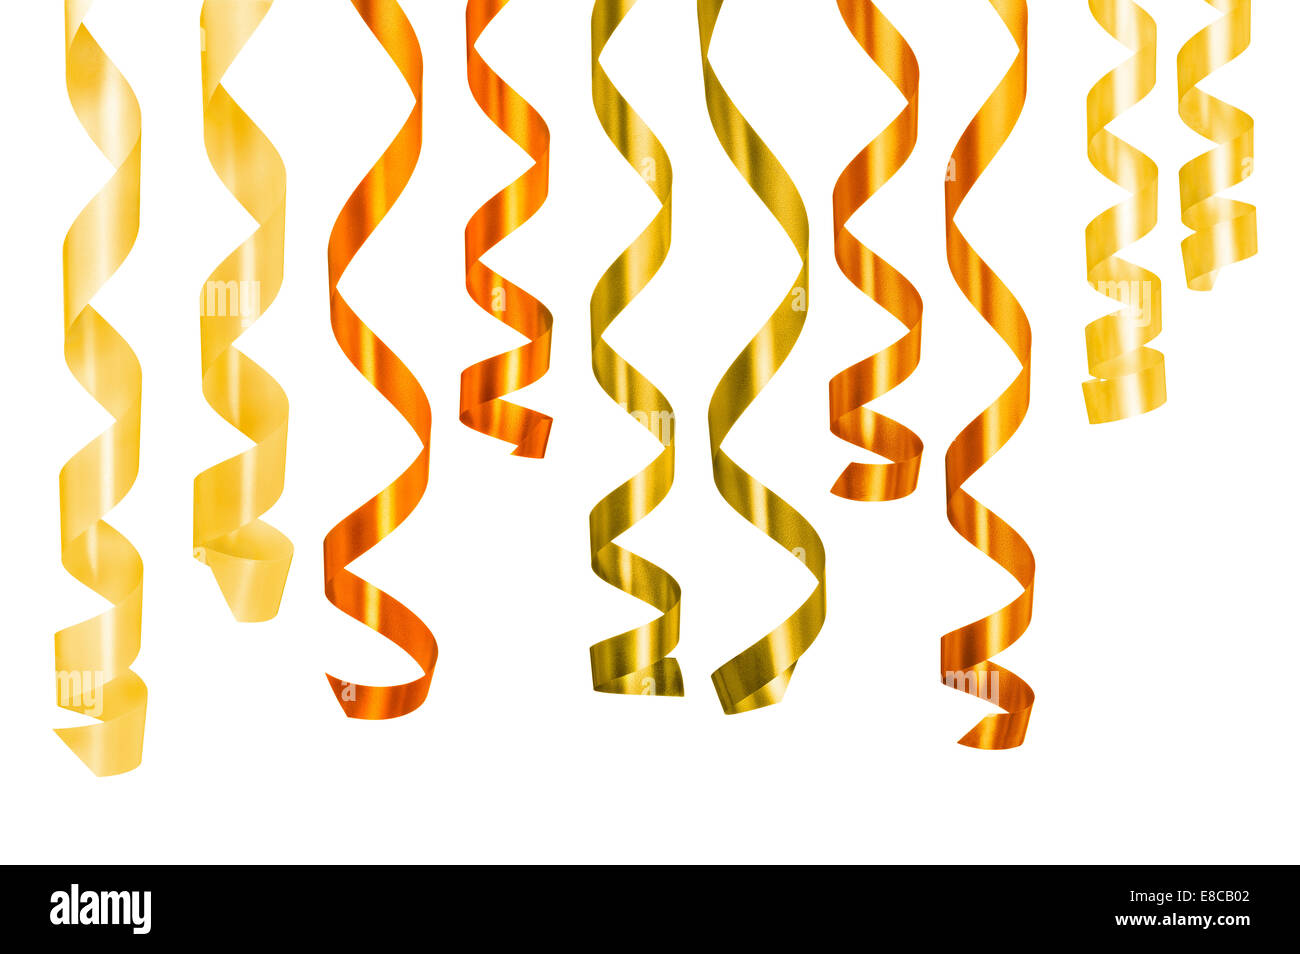 Different ribbons gift hanging against white background. Clipping path - Stock Image